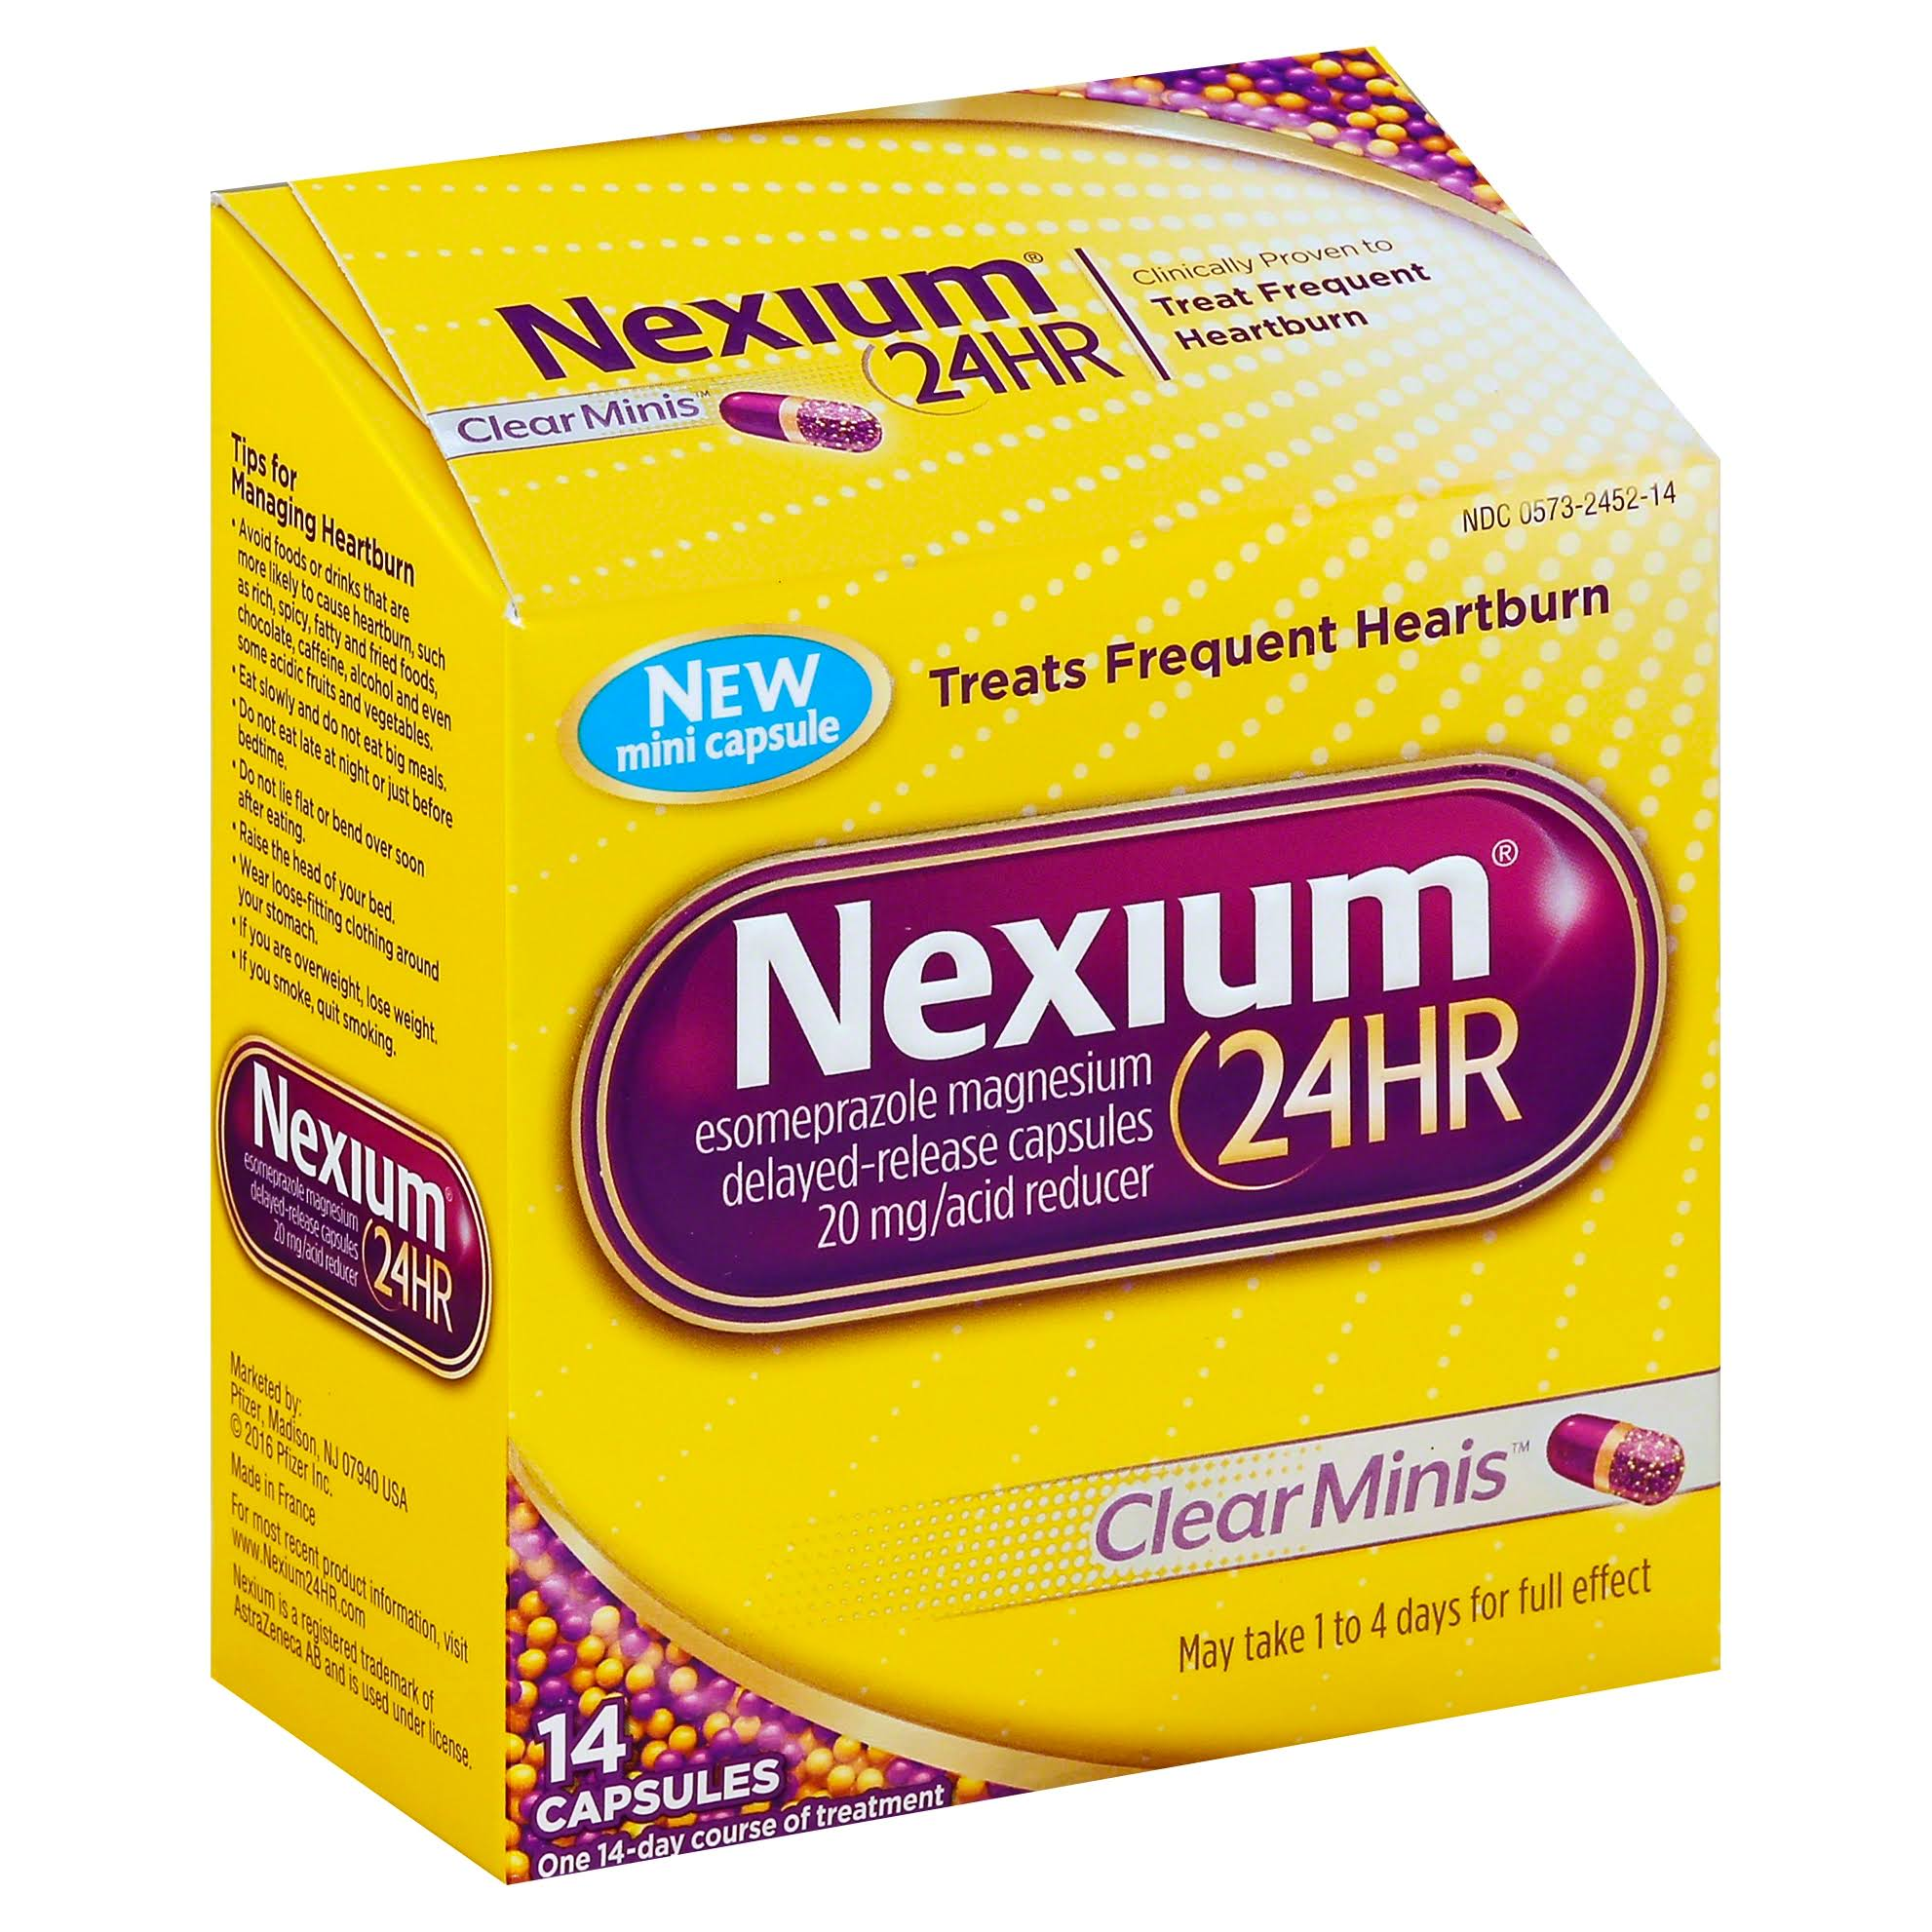 Nexium 24hr Clear Minis Acid Reducers - 14 Capsules, 20mg